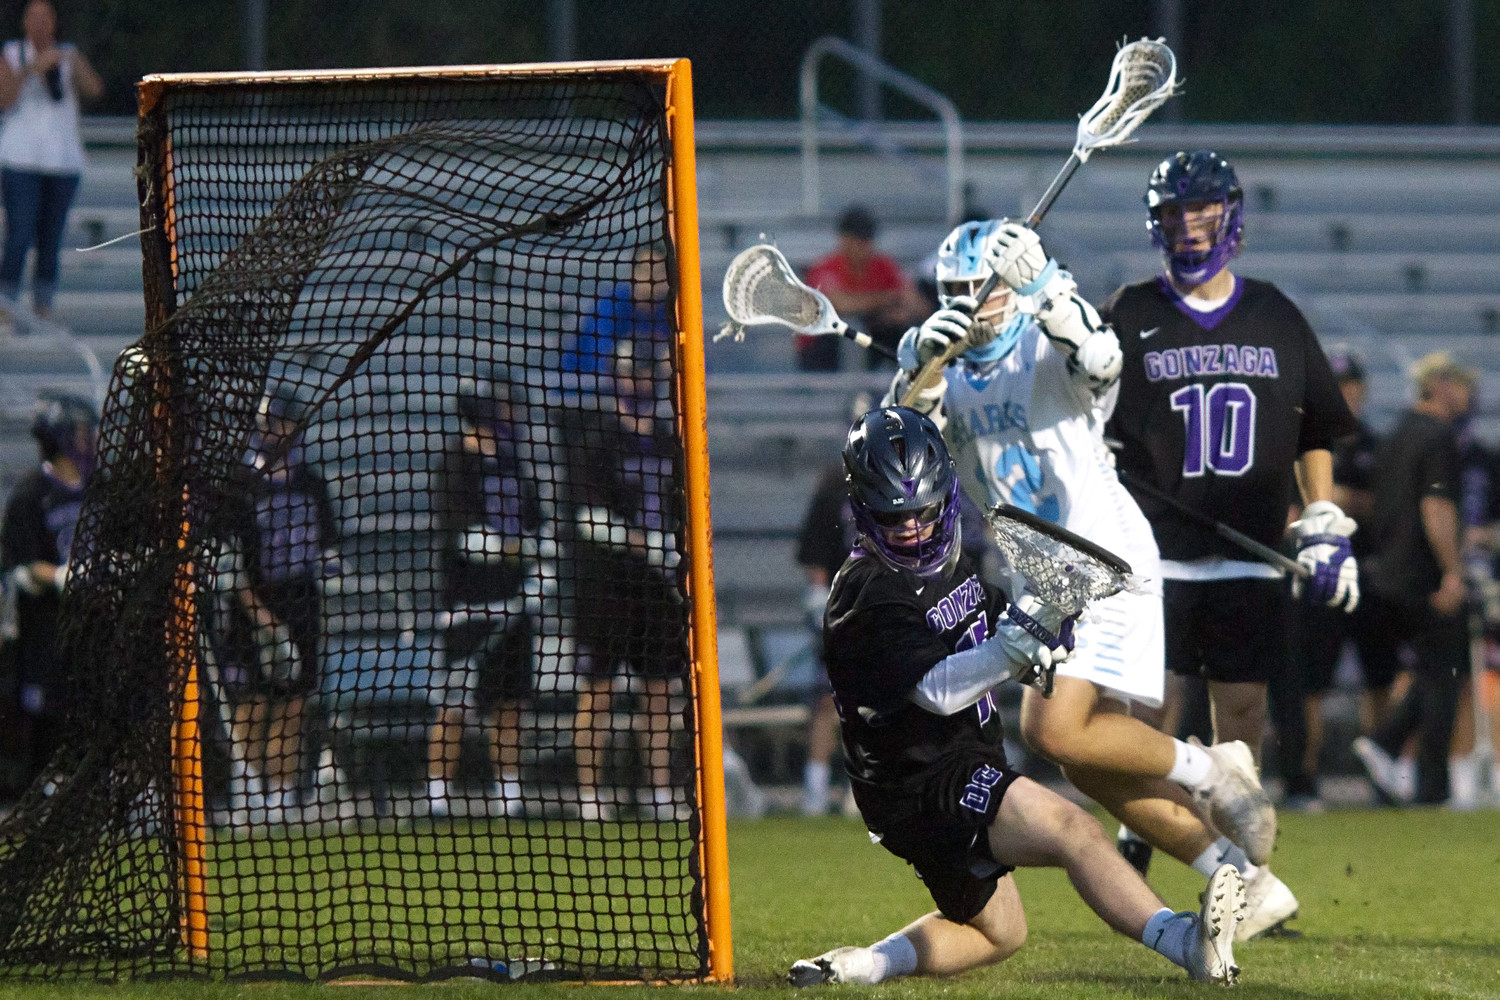 Ponte Vedra's Walker Azzaro beats the Gonzaga goaltender for a Sharks goal last Friday, April 6. Ponte Vedra ultimately lost to the Washington, D.C.-based school 9-6.